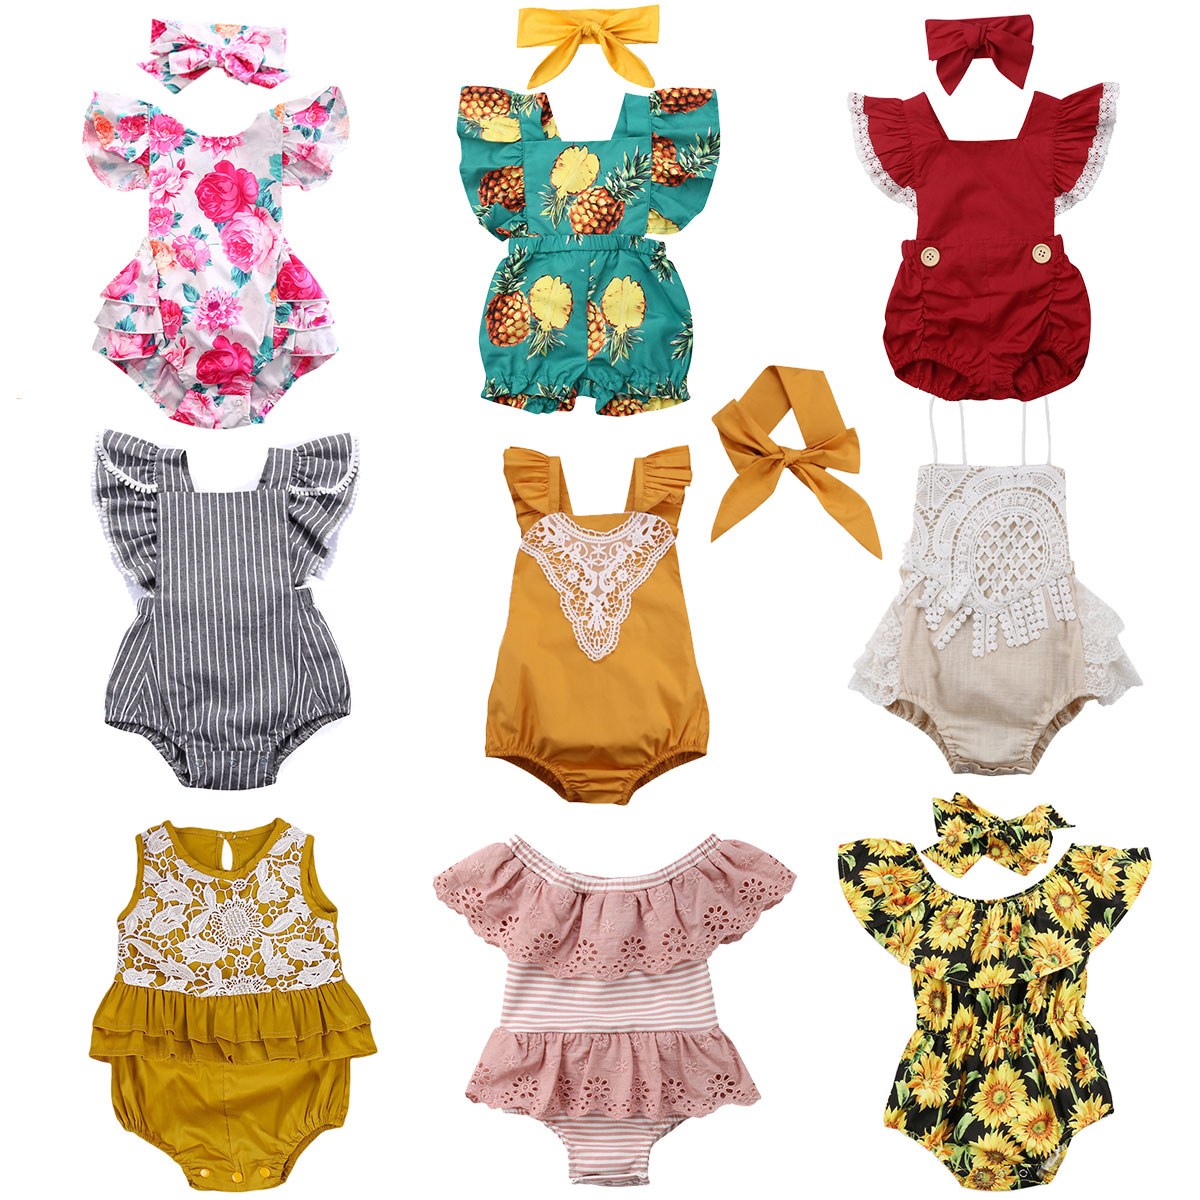 Infant Newborn Baby Girls Ruffles Rompers Summer Lace Flower Baby Girls Clothes Toddler Girl Jumpsuit Playsuit 2019 New